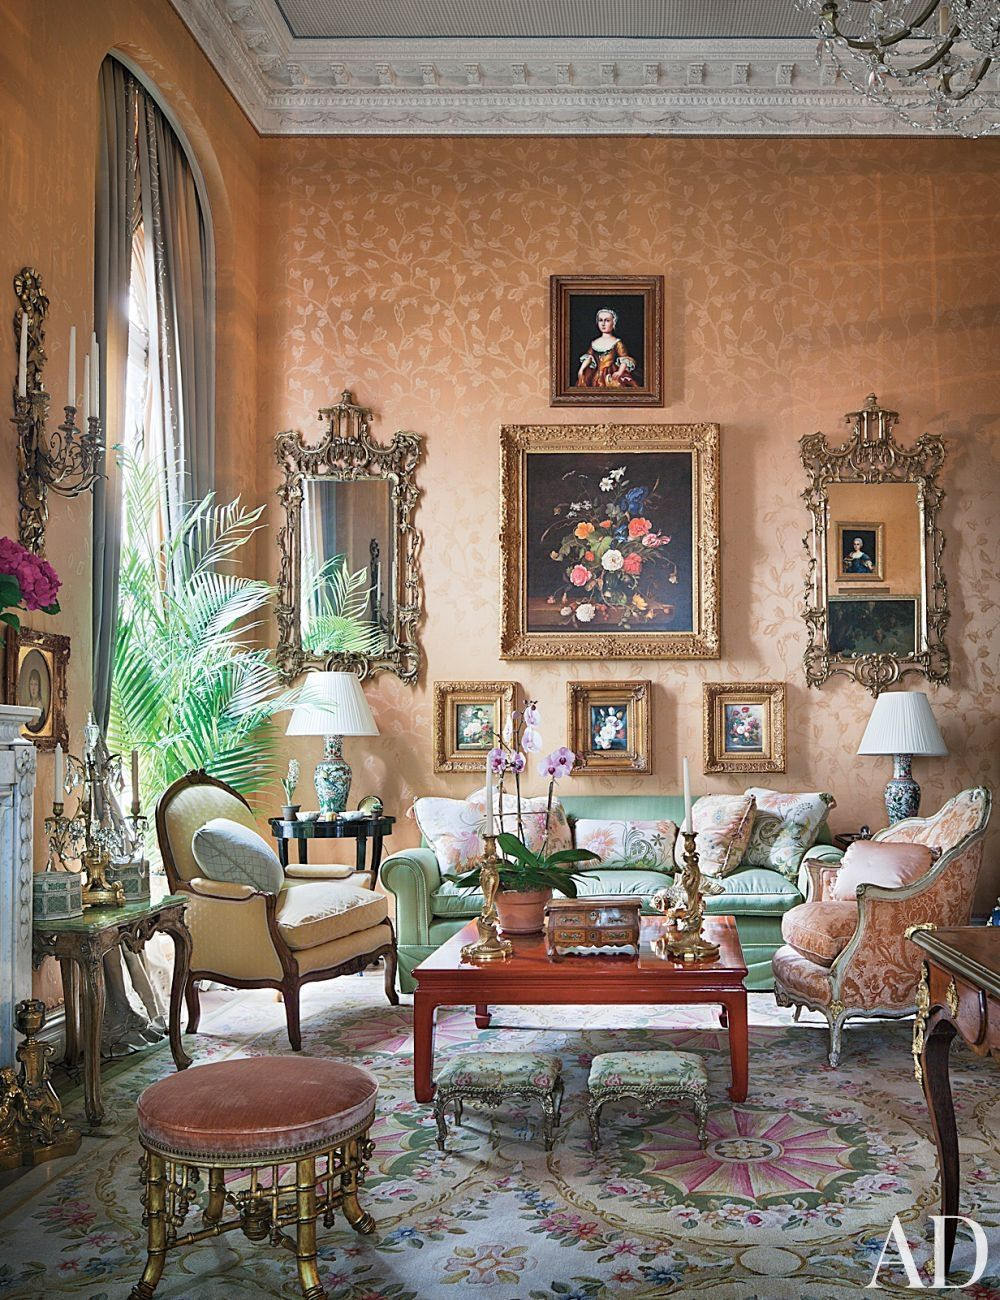 Traditional Living Room By Mario Buatta Via Archdigest Designfile Country Living Room French Country Living Room Home #traditional #living #room #pictures